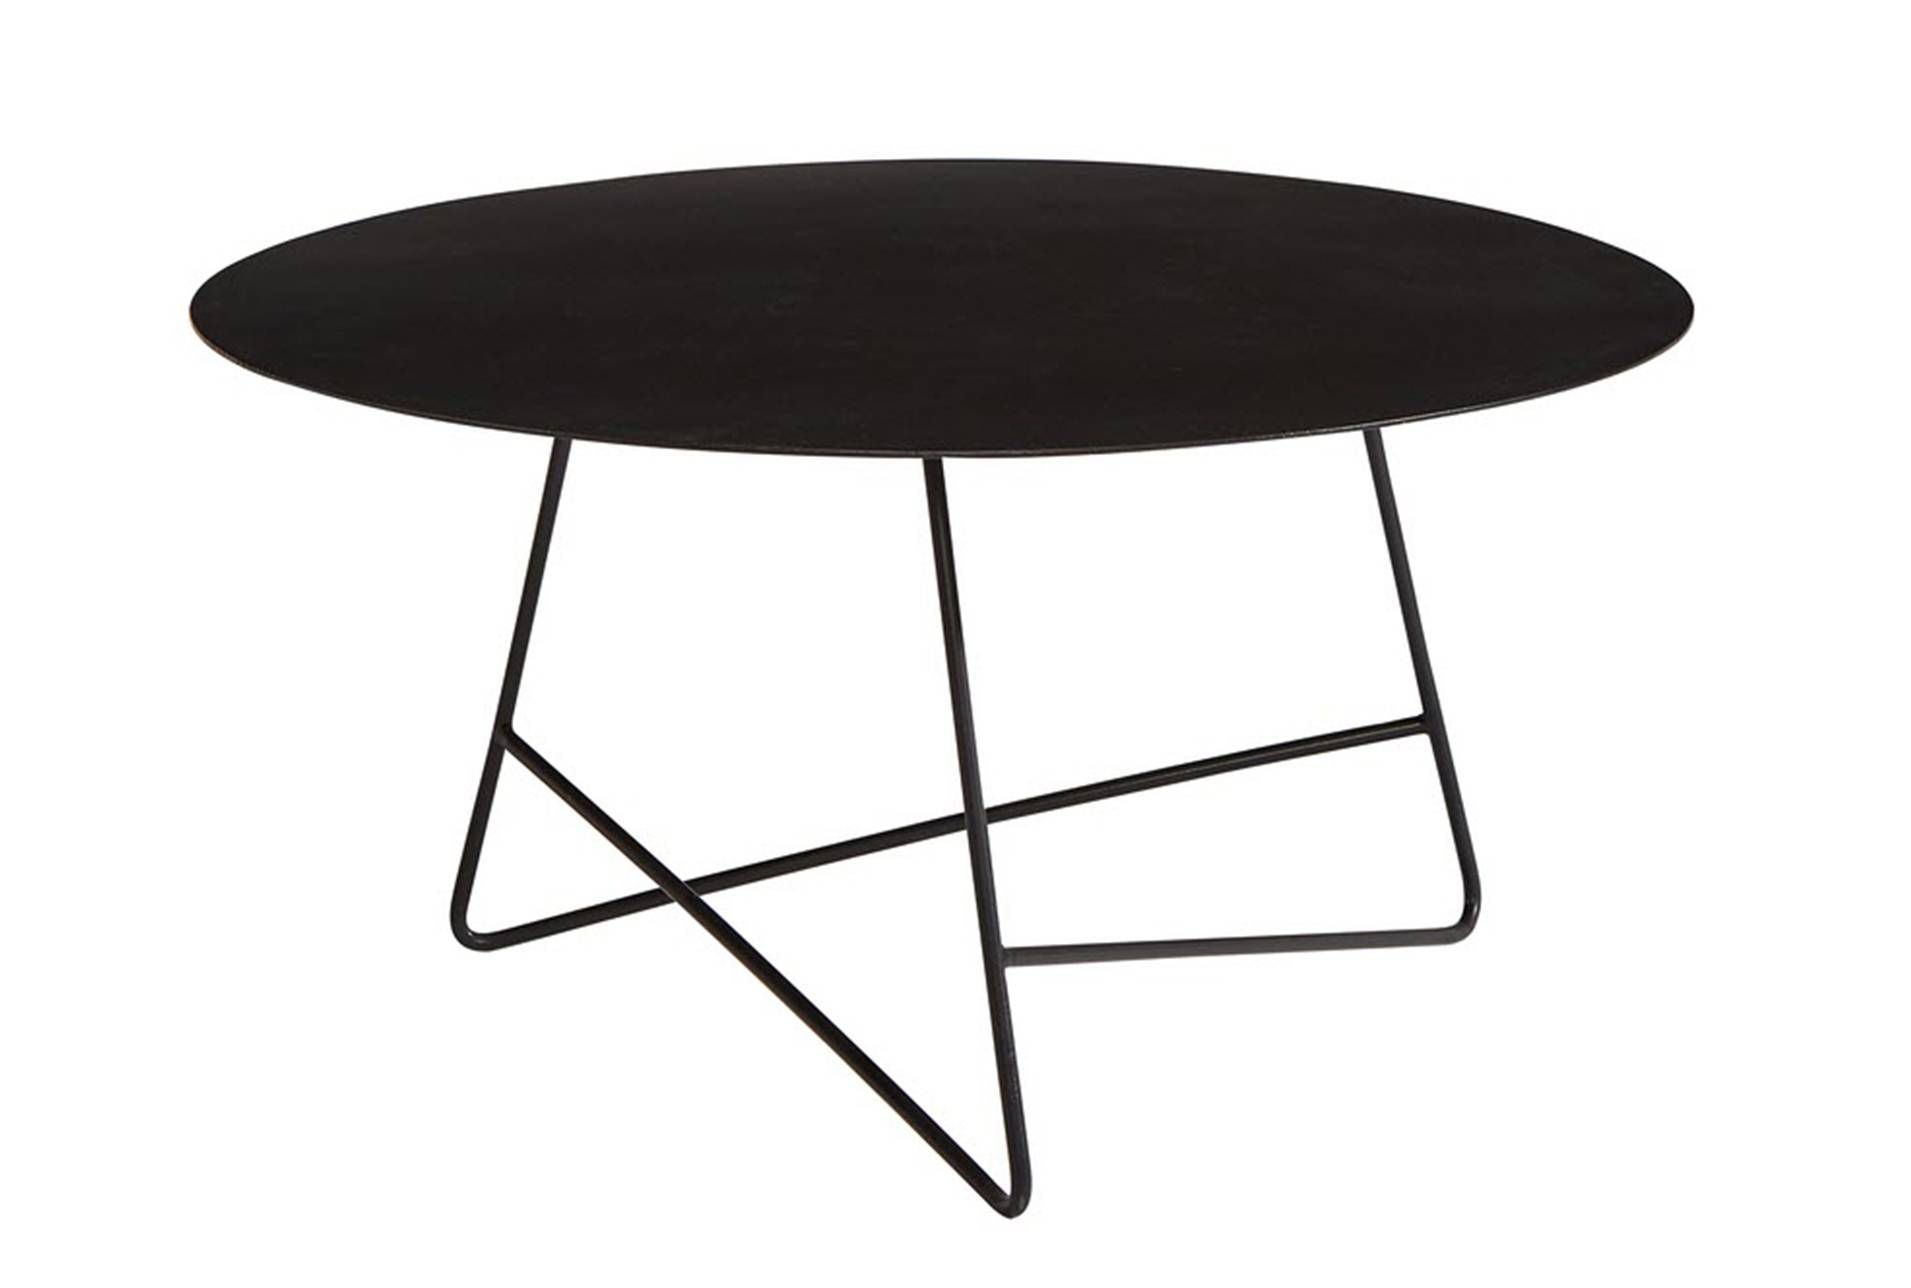 Magnolia Home Traverse Carbon Metal Round Coffee Table By Joanna Gaines Round Metal Coffee Table Round Black Coffee Table Black Coffee Tables [ 1288 x 1911 Pixel ]